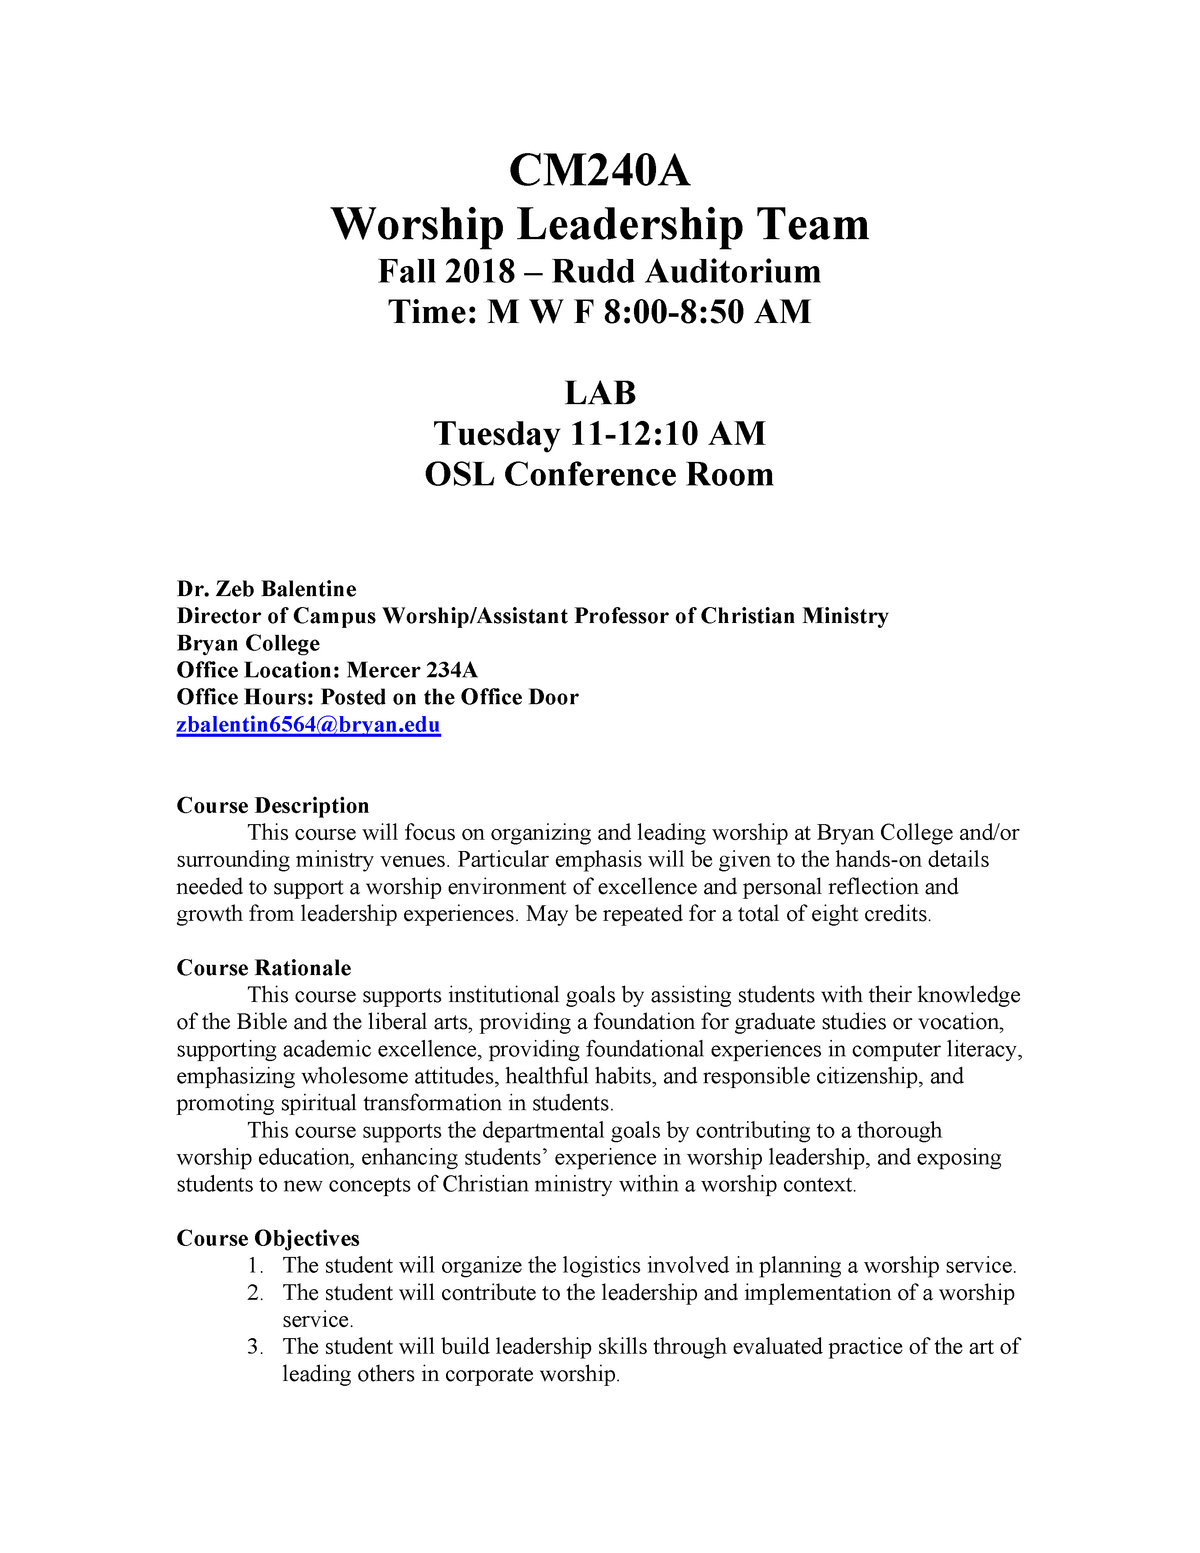 CM240A Syllabus - CM 240: Worship Leadership Team - StuDocu